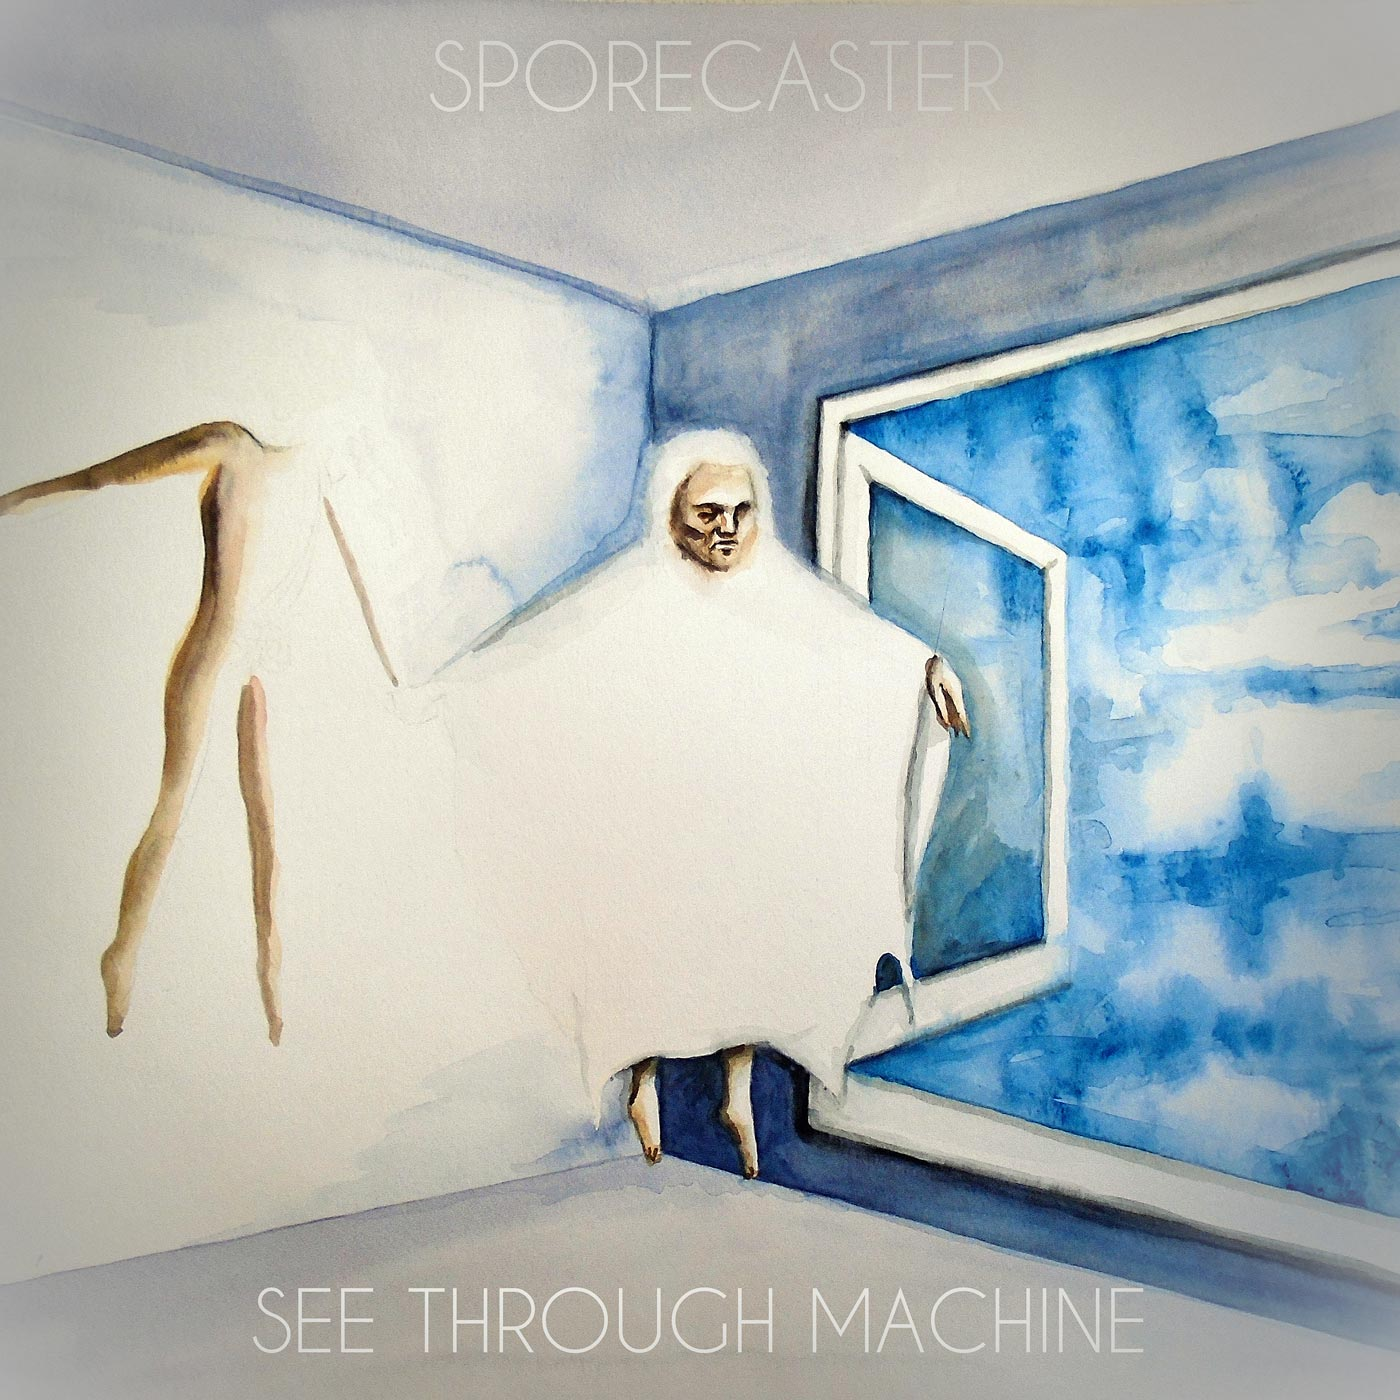 sporecaster-see-through-medicine